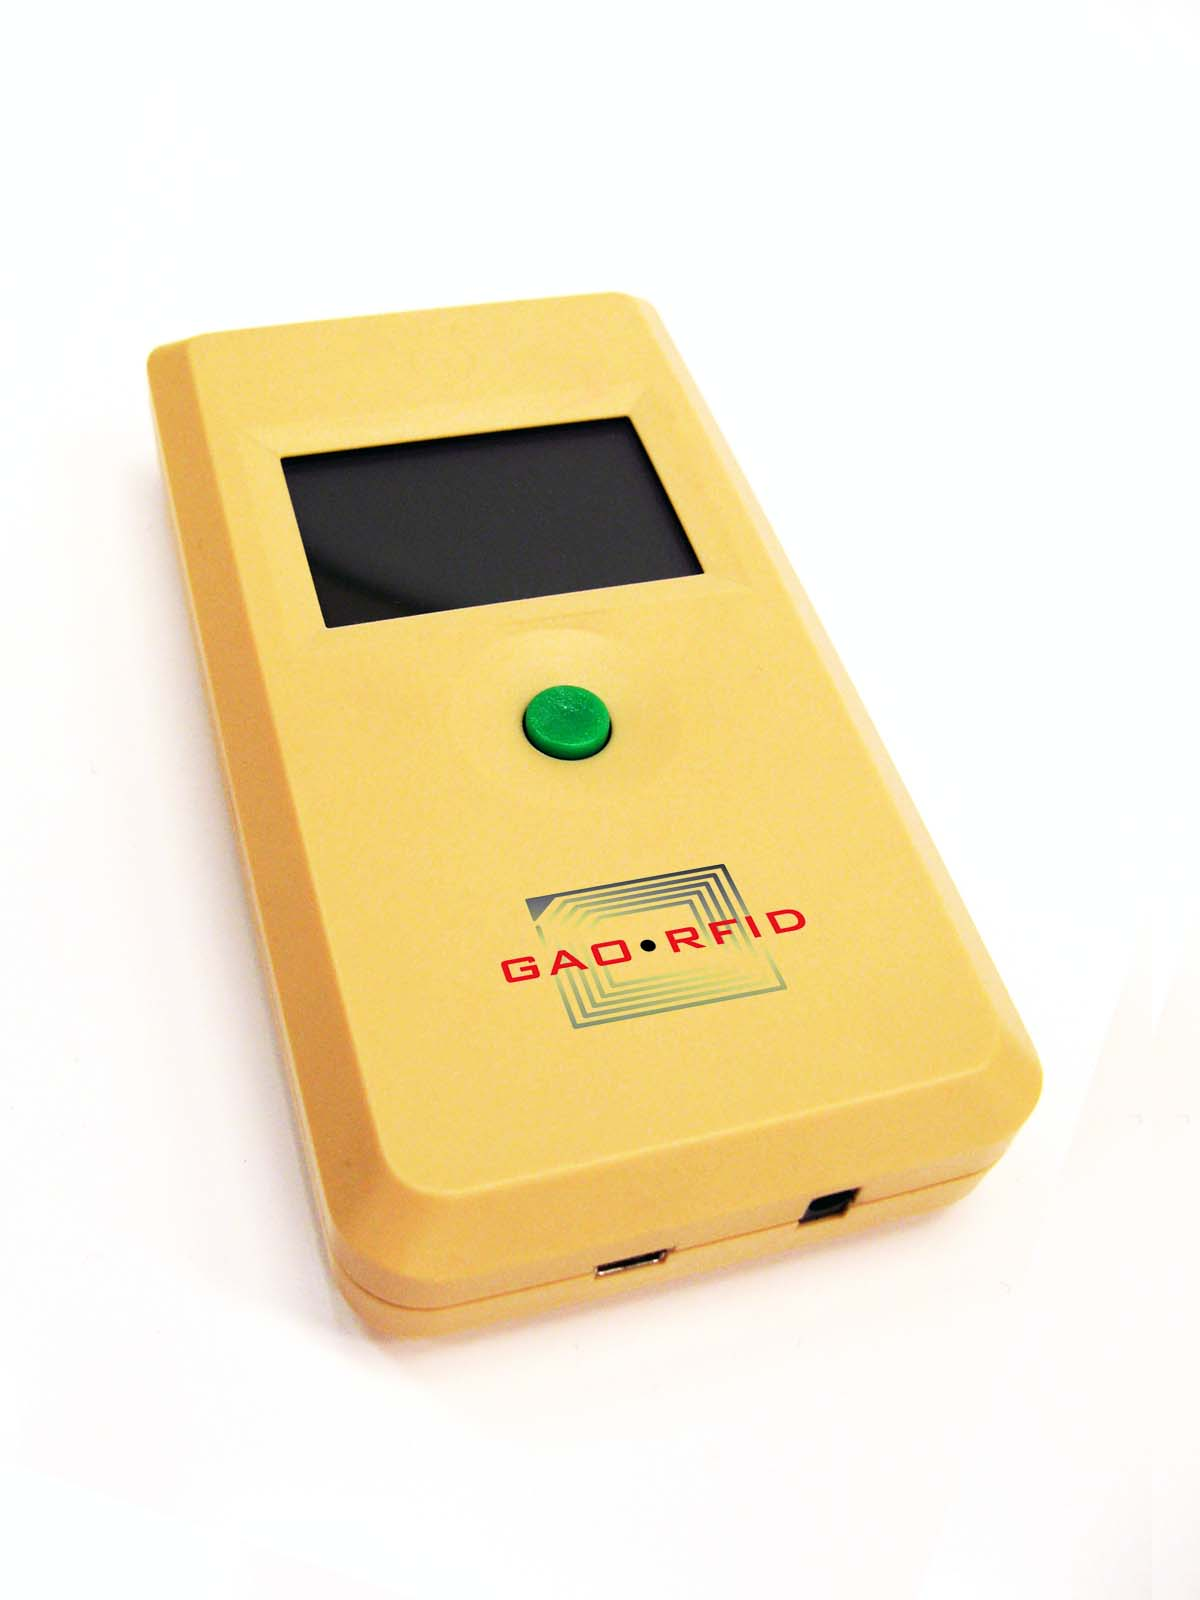 Low Frequency (LF) 134.2 kHz.RFID FDX Handheld Reader for Pets